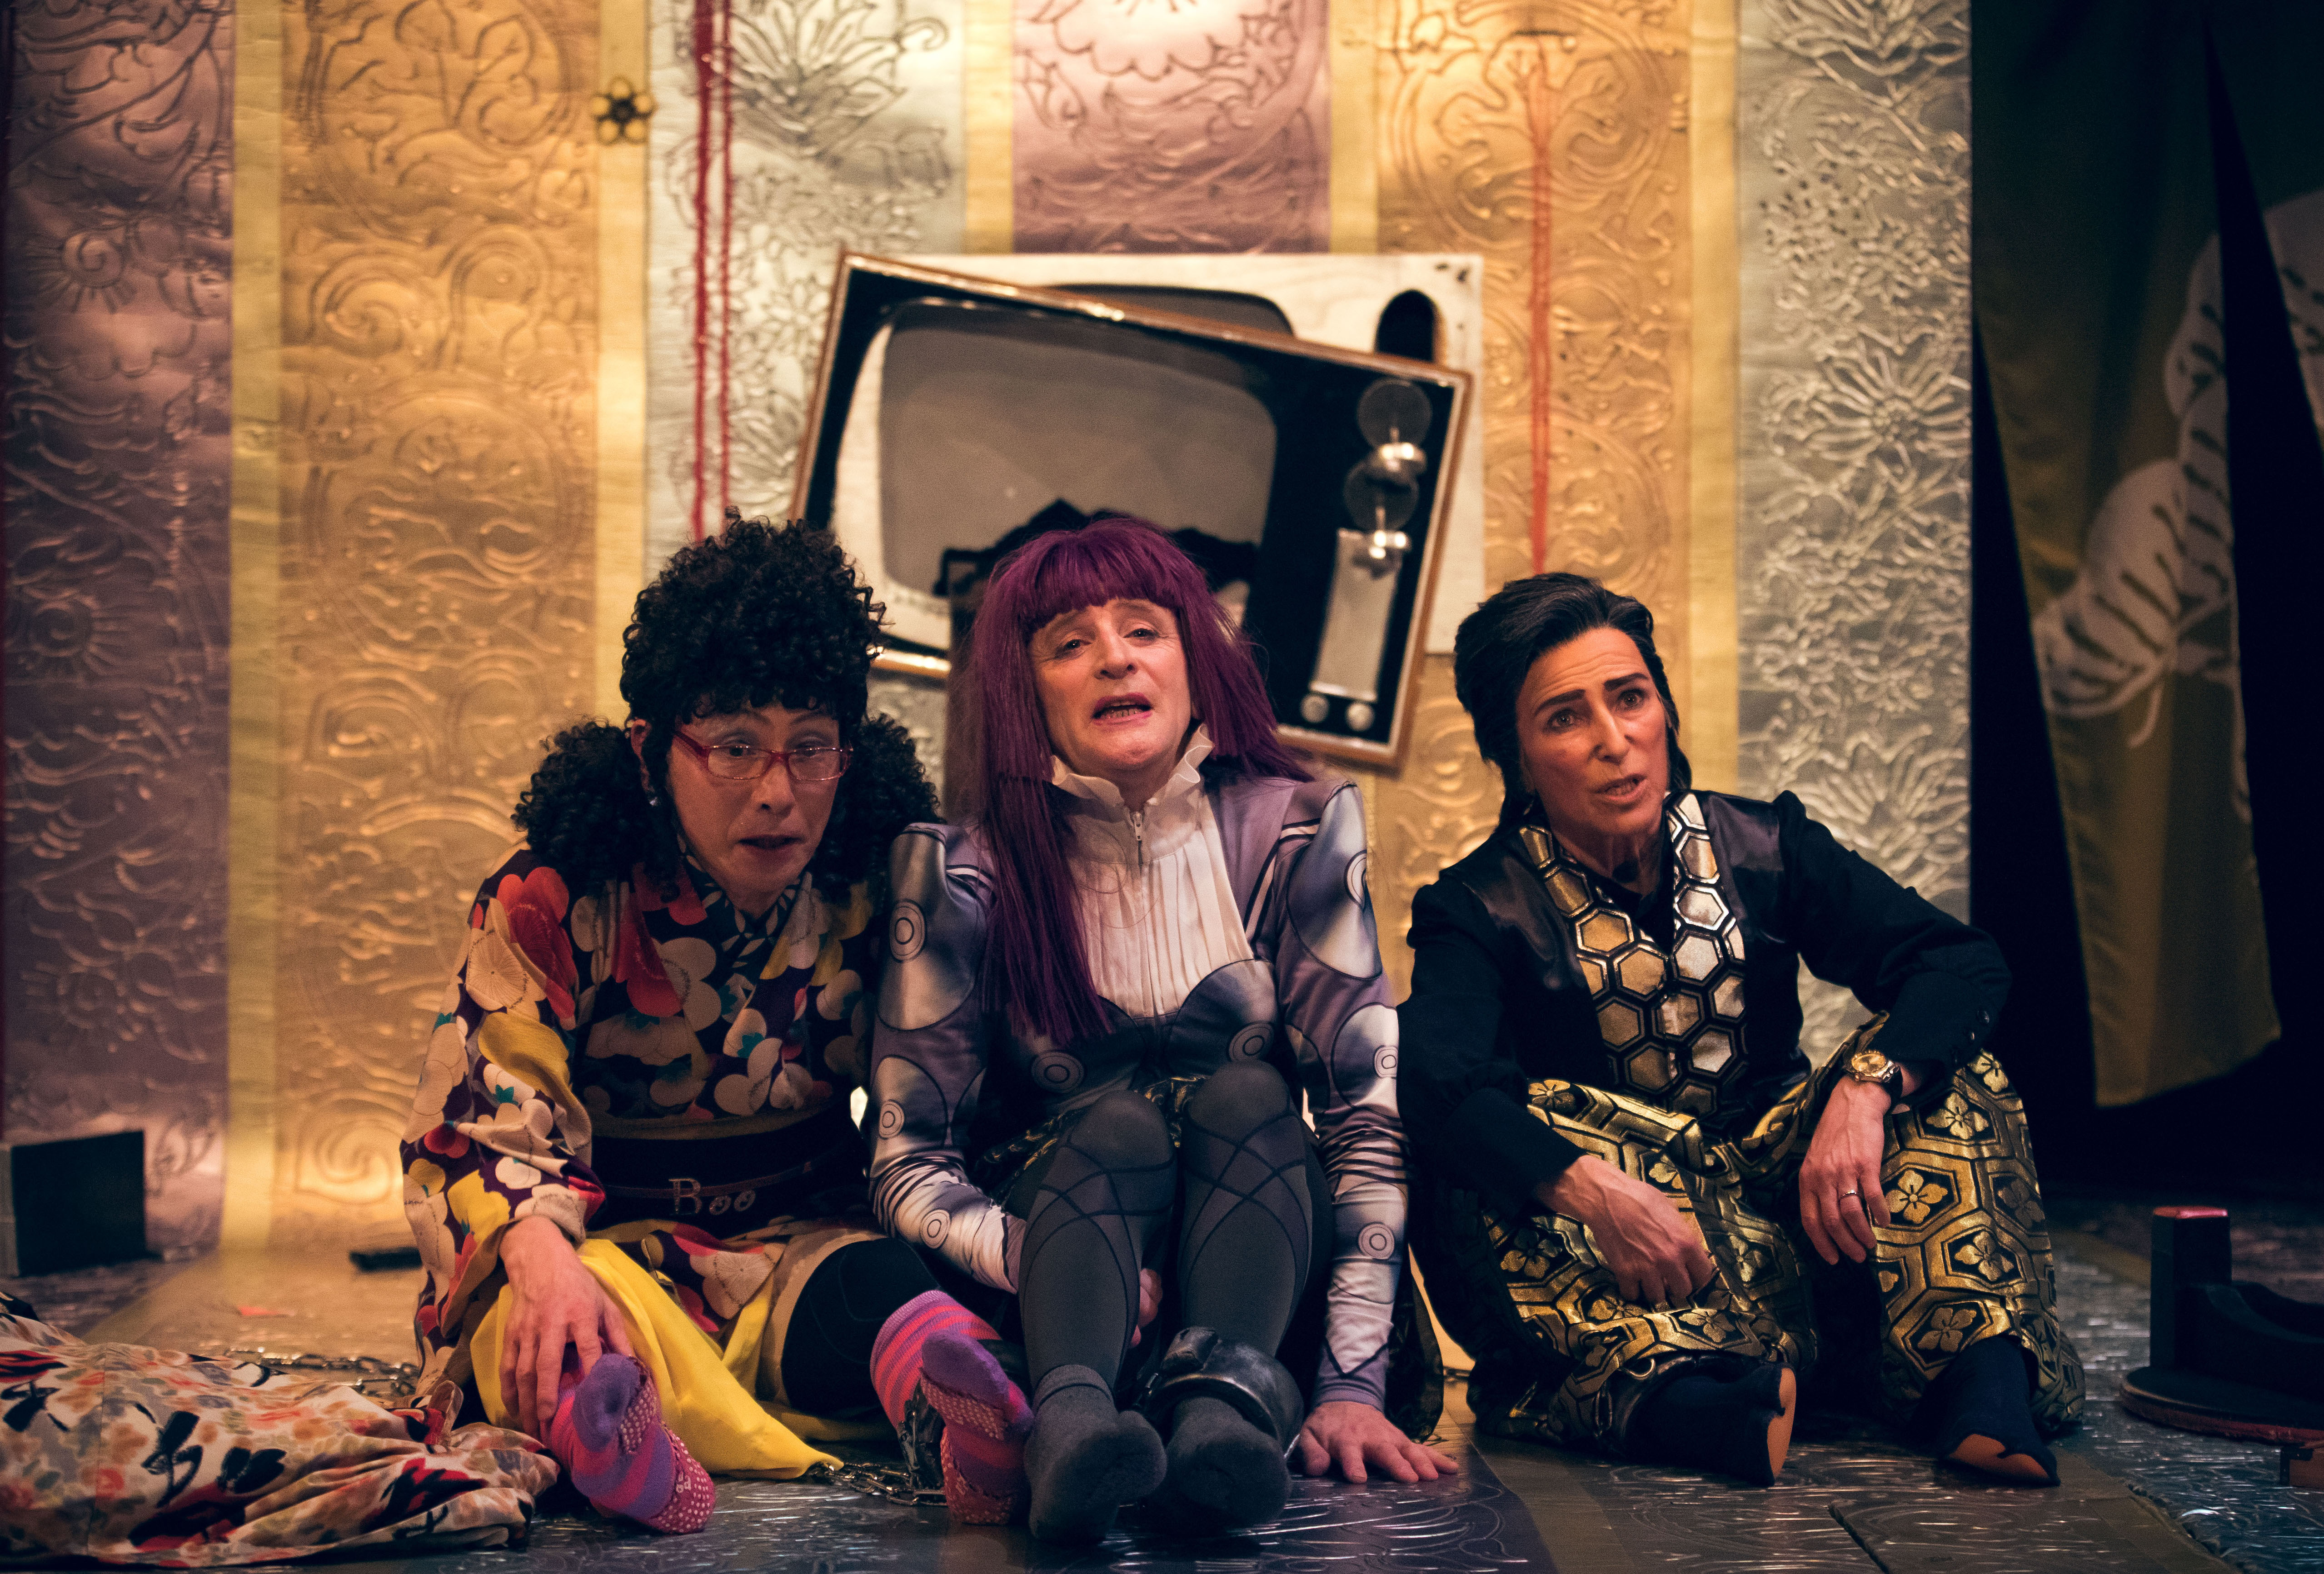 three performers sit in front of a broken tv